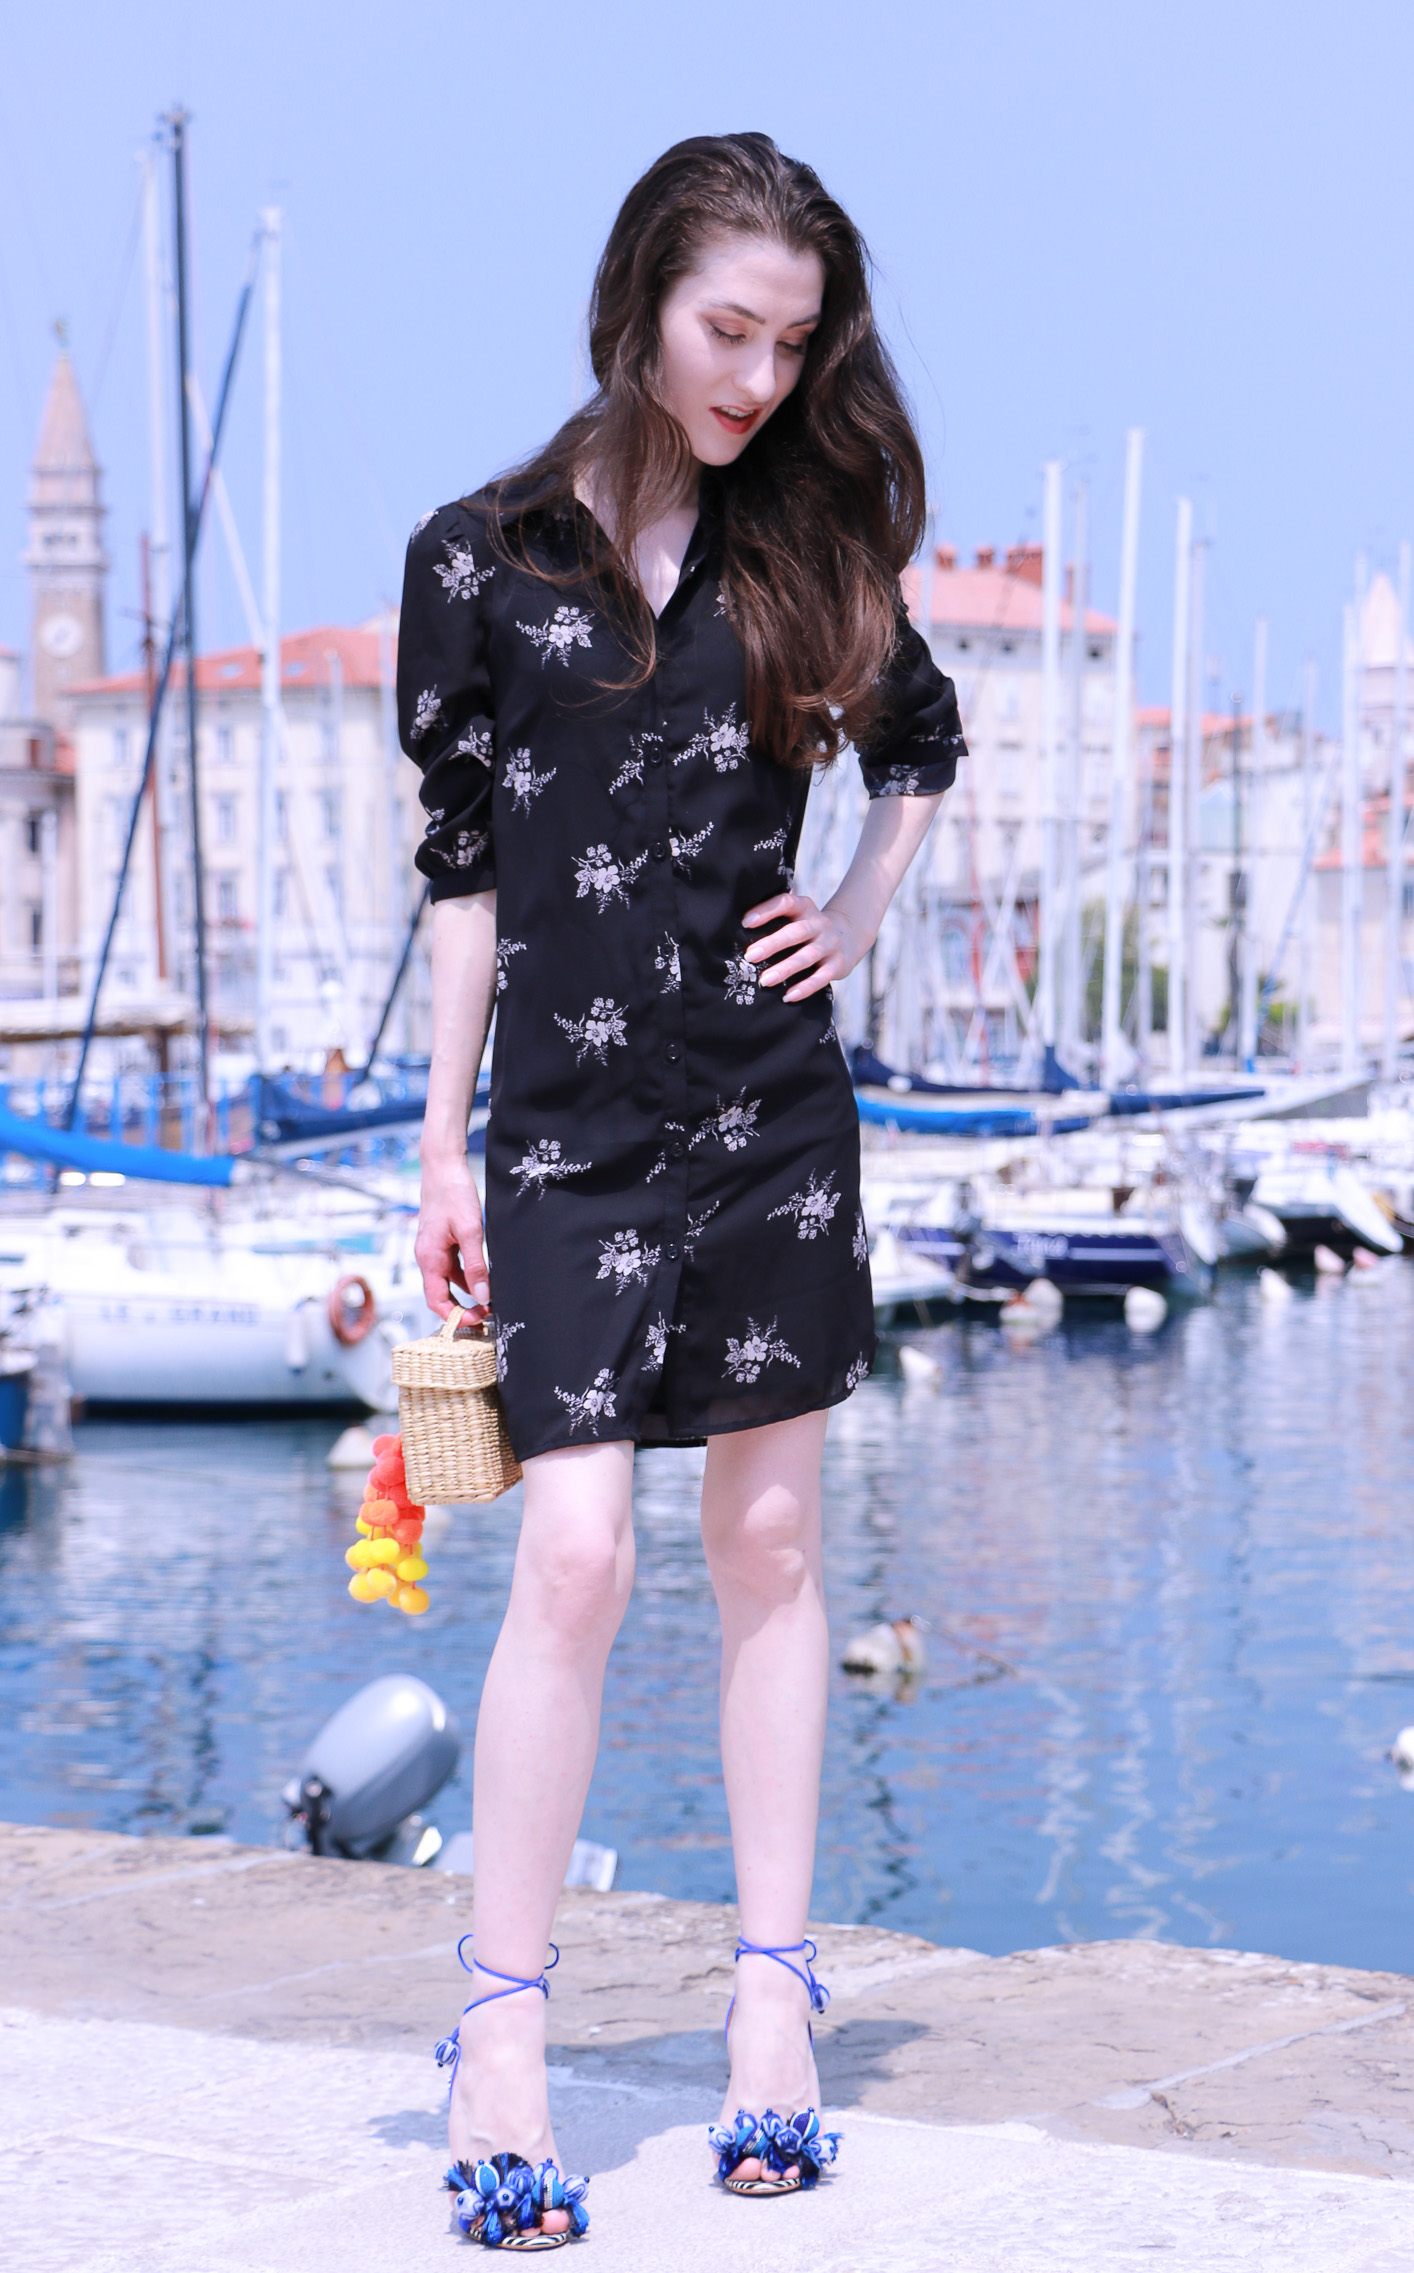 Fashion blogger Veronika Lipar of Brunette From Wall Street sharing how to look chic on summer vacations wearing floral dress, raffia basket bag and sandals